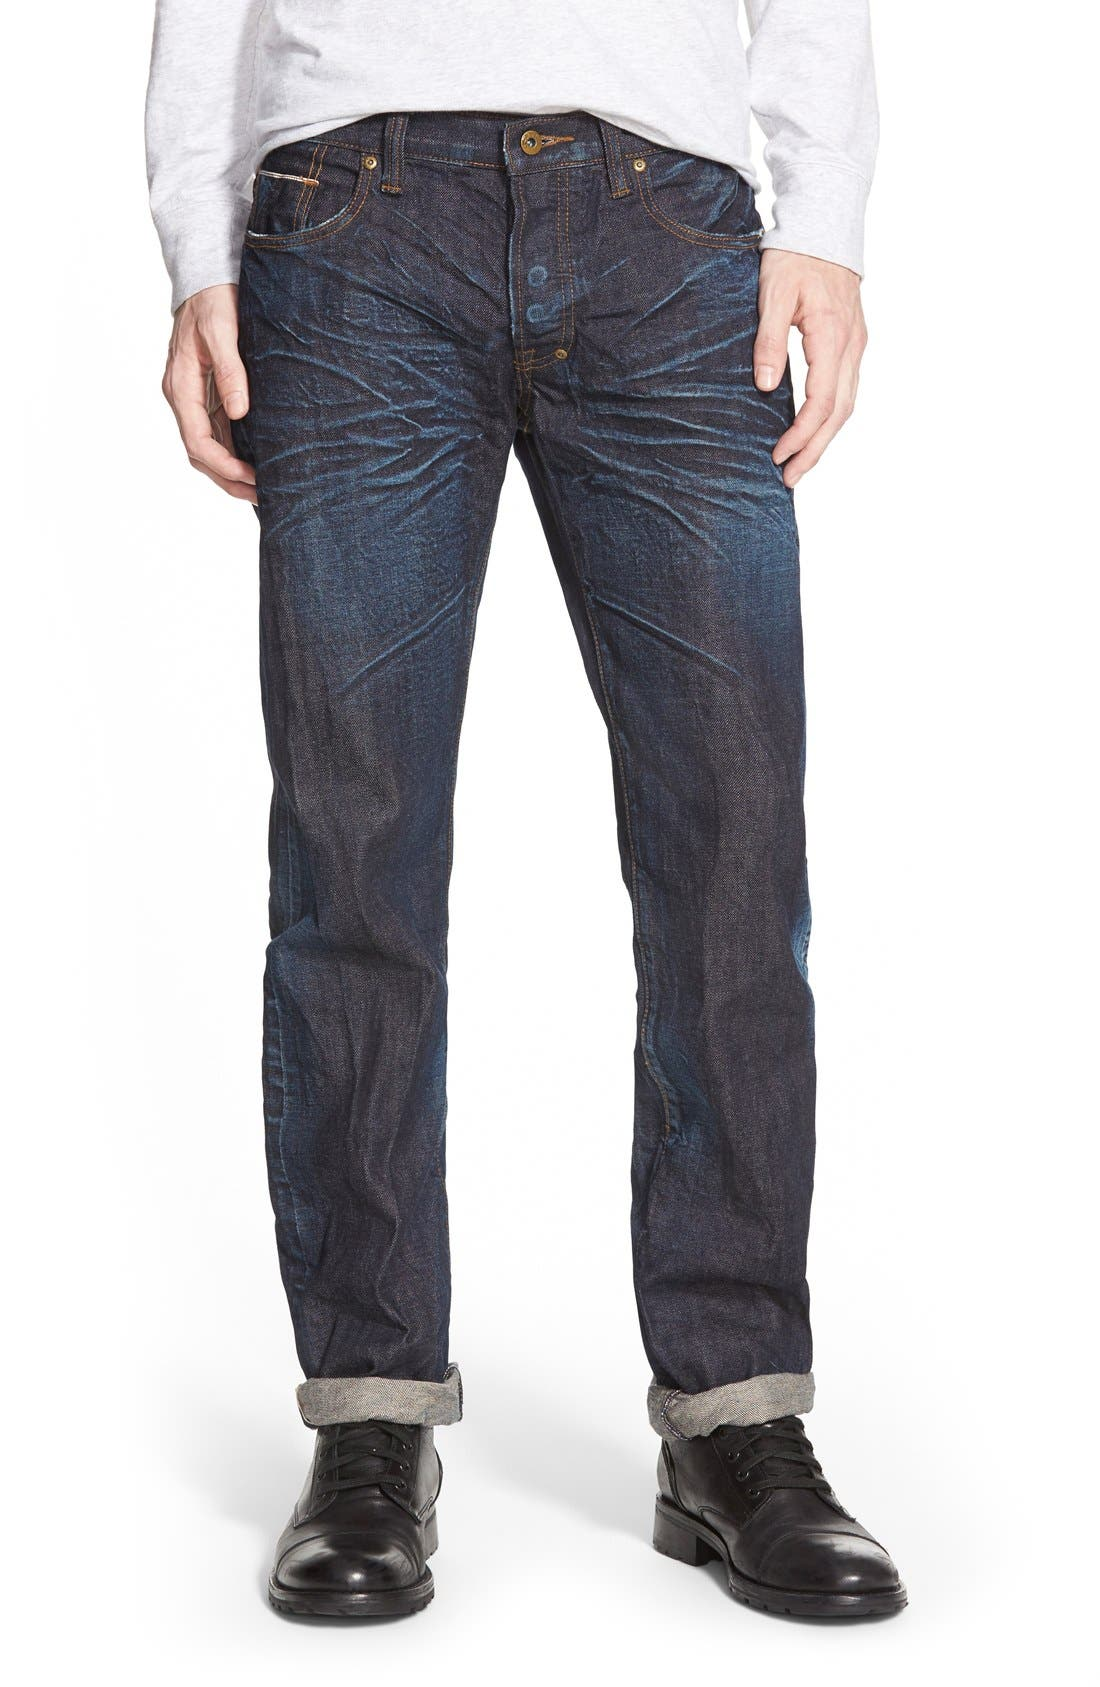 Alternate Image 1 Selected - PRPS 'Barracuda' Straight Leg Selvedge Jeans (6 Month Wash)